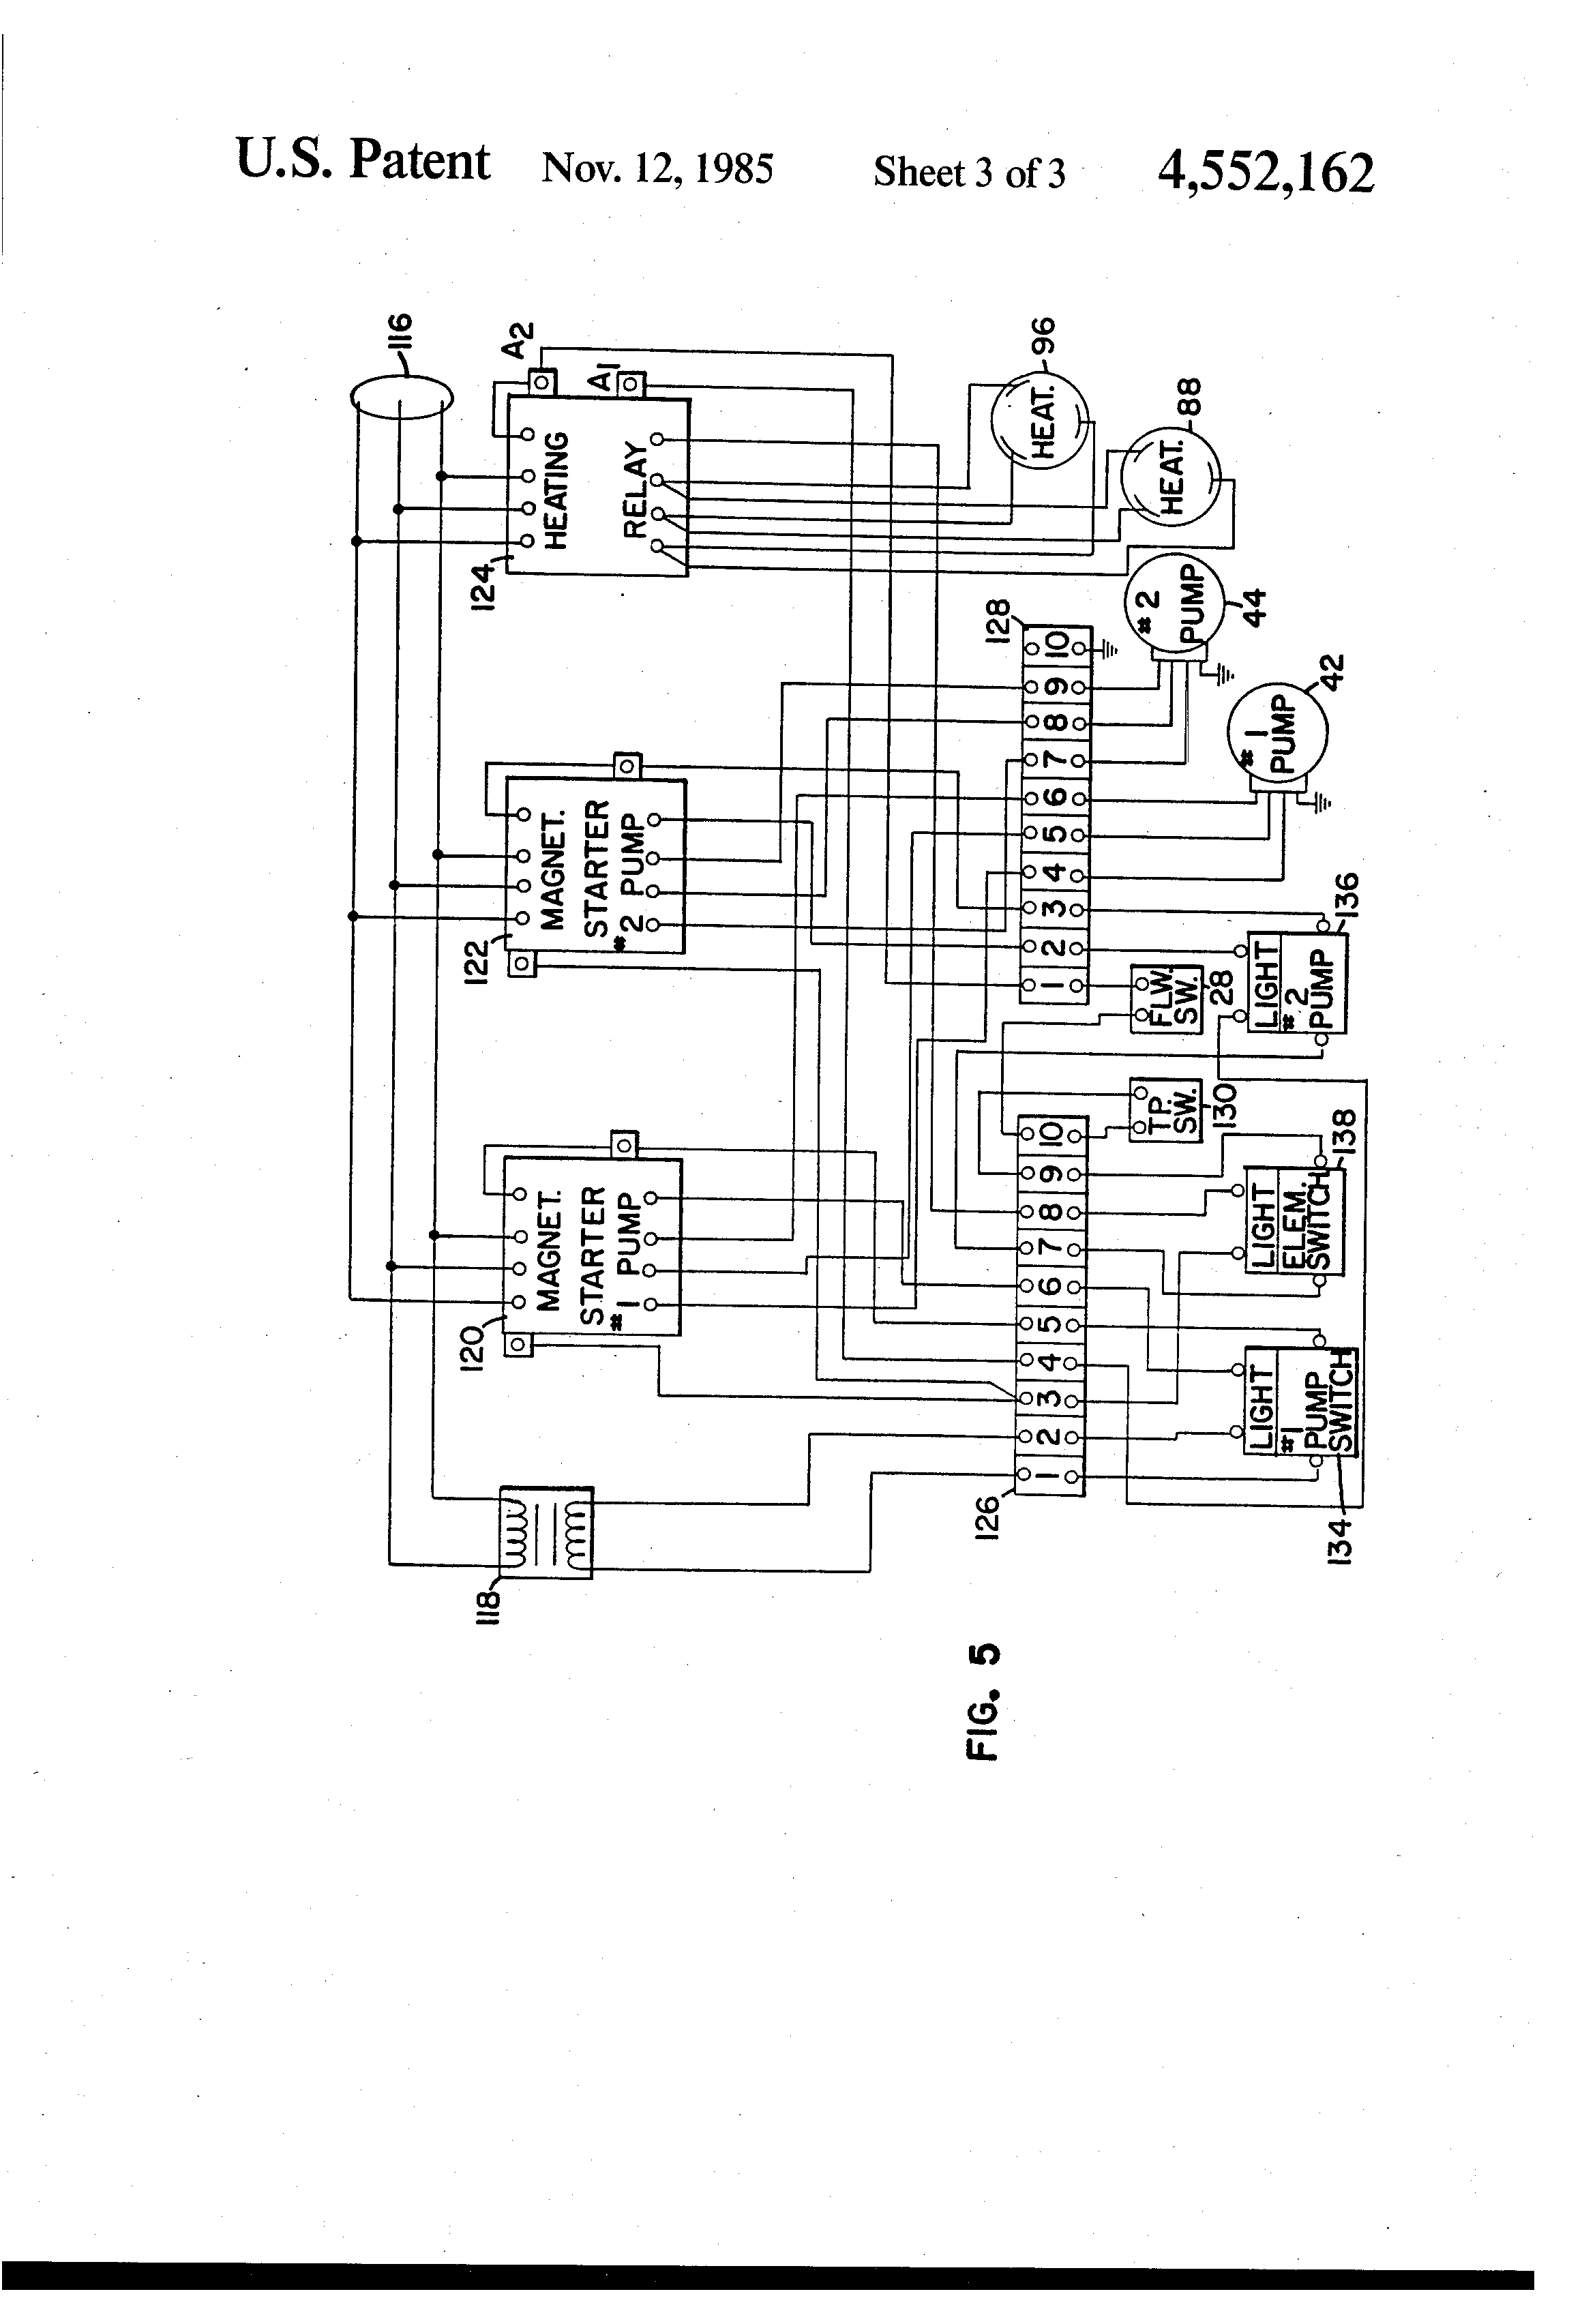 old hot water pressure washer wiring diagrams karcher hds 580    wiring       diagram    online    wiring       diagram     karcher hds 580    wiring       diagram    online    wiring       diagram